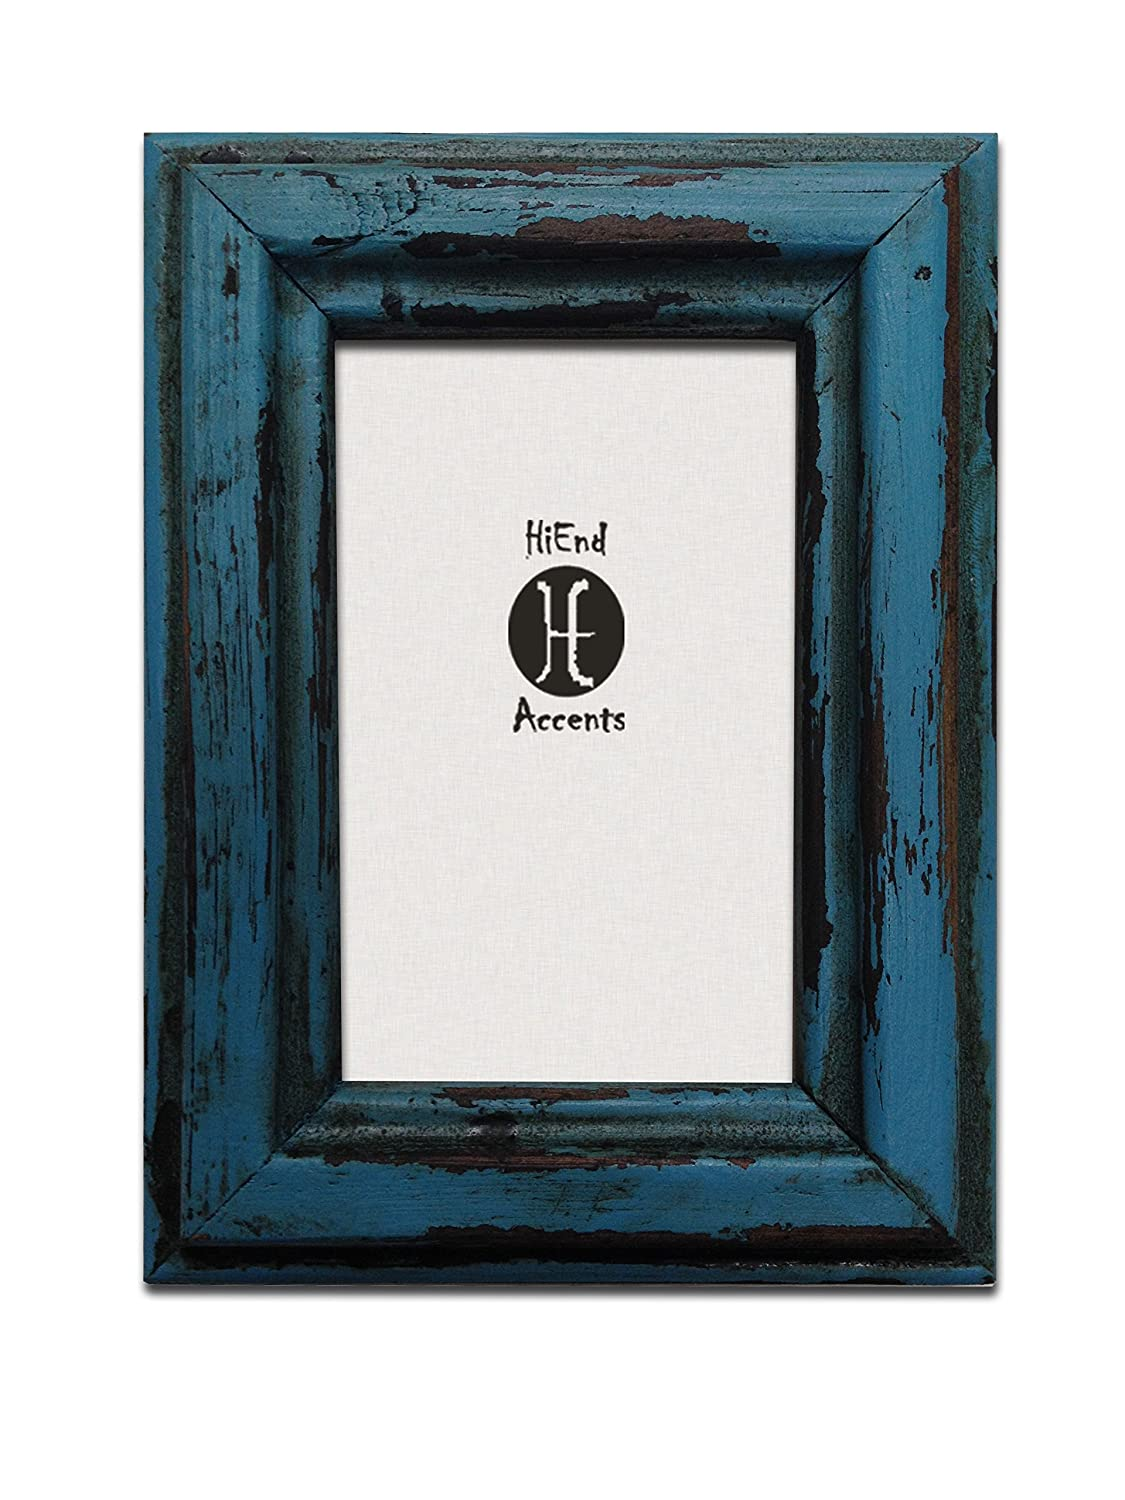 amazoncom hiend accents painted distressed wood frame 4 by 6 inch turquoise - Distressed Wood Picture Frames